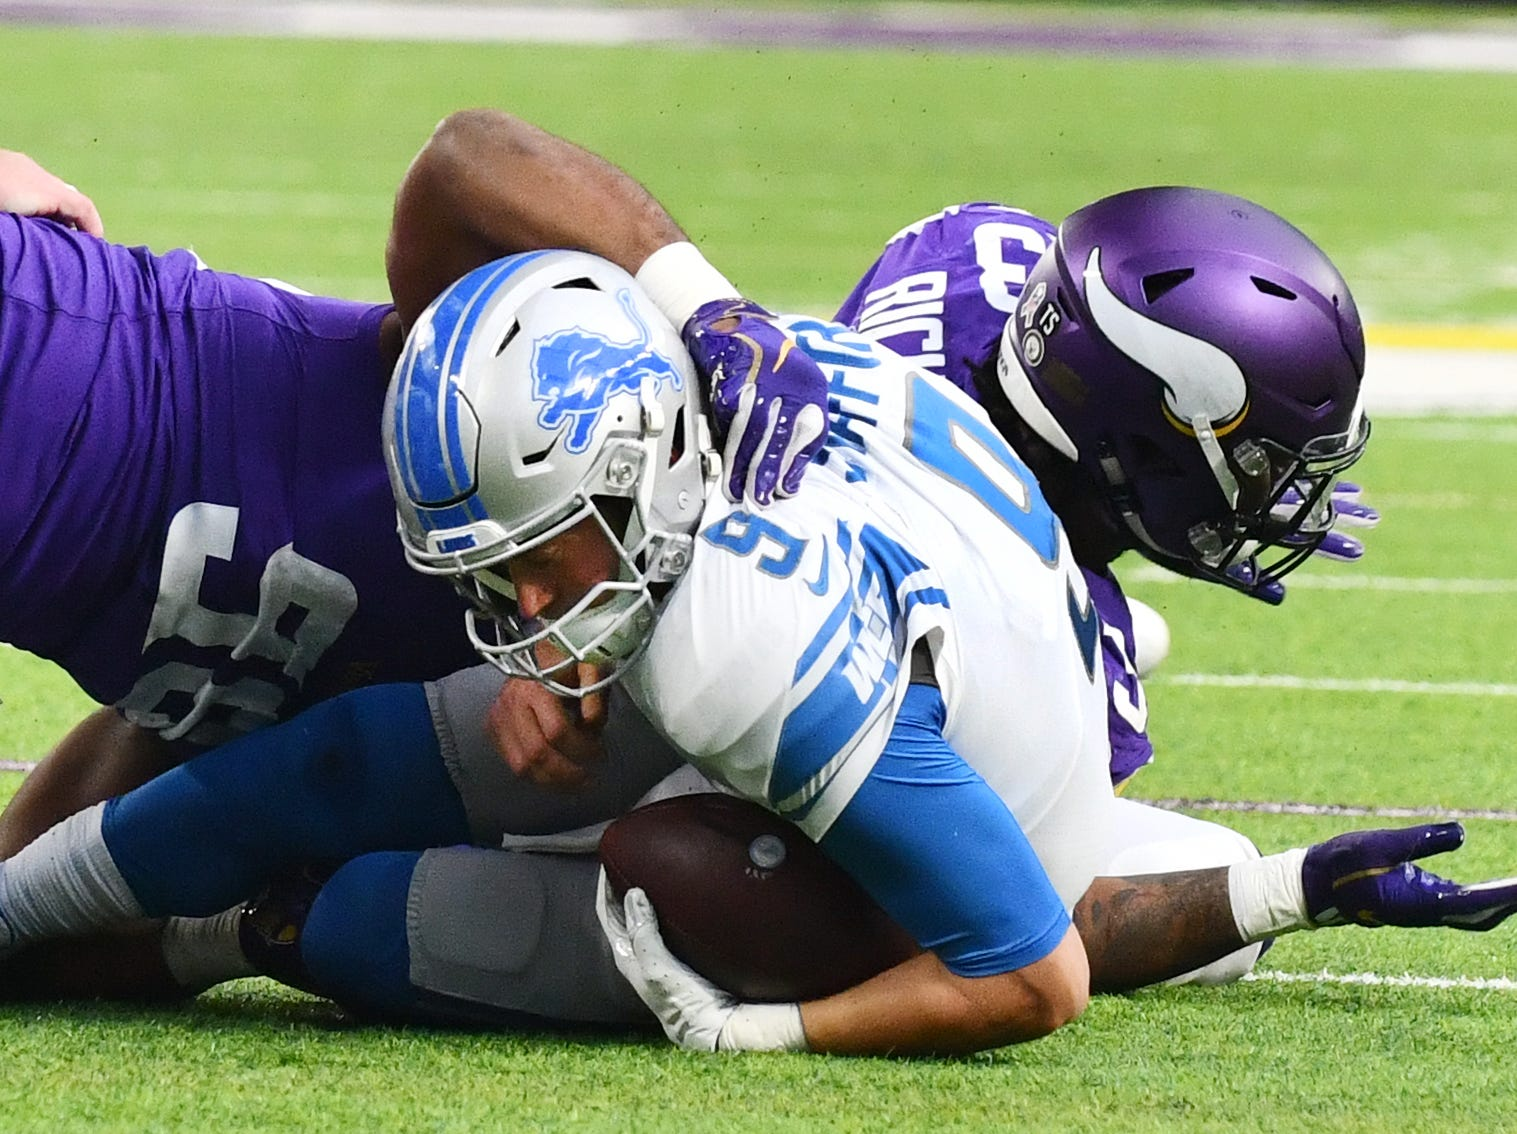 Vikings' Tom Johnson and Sheldon Richardson sack Lions quarterback Matthew Stafford in the second quarter.